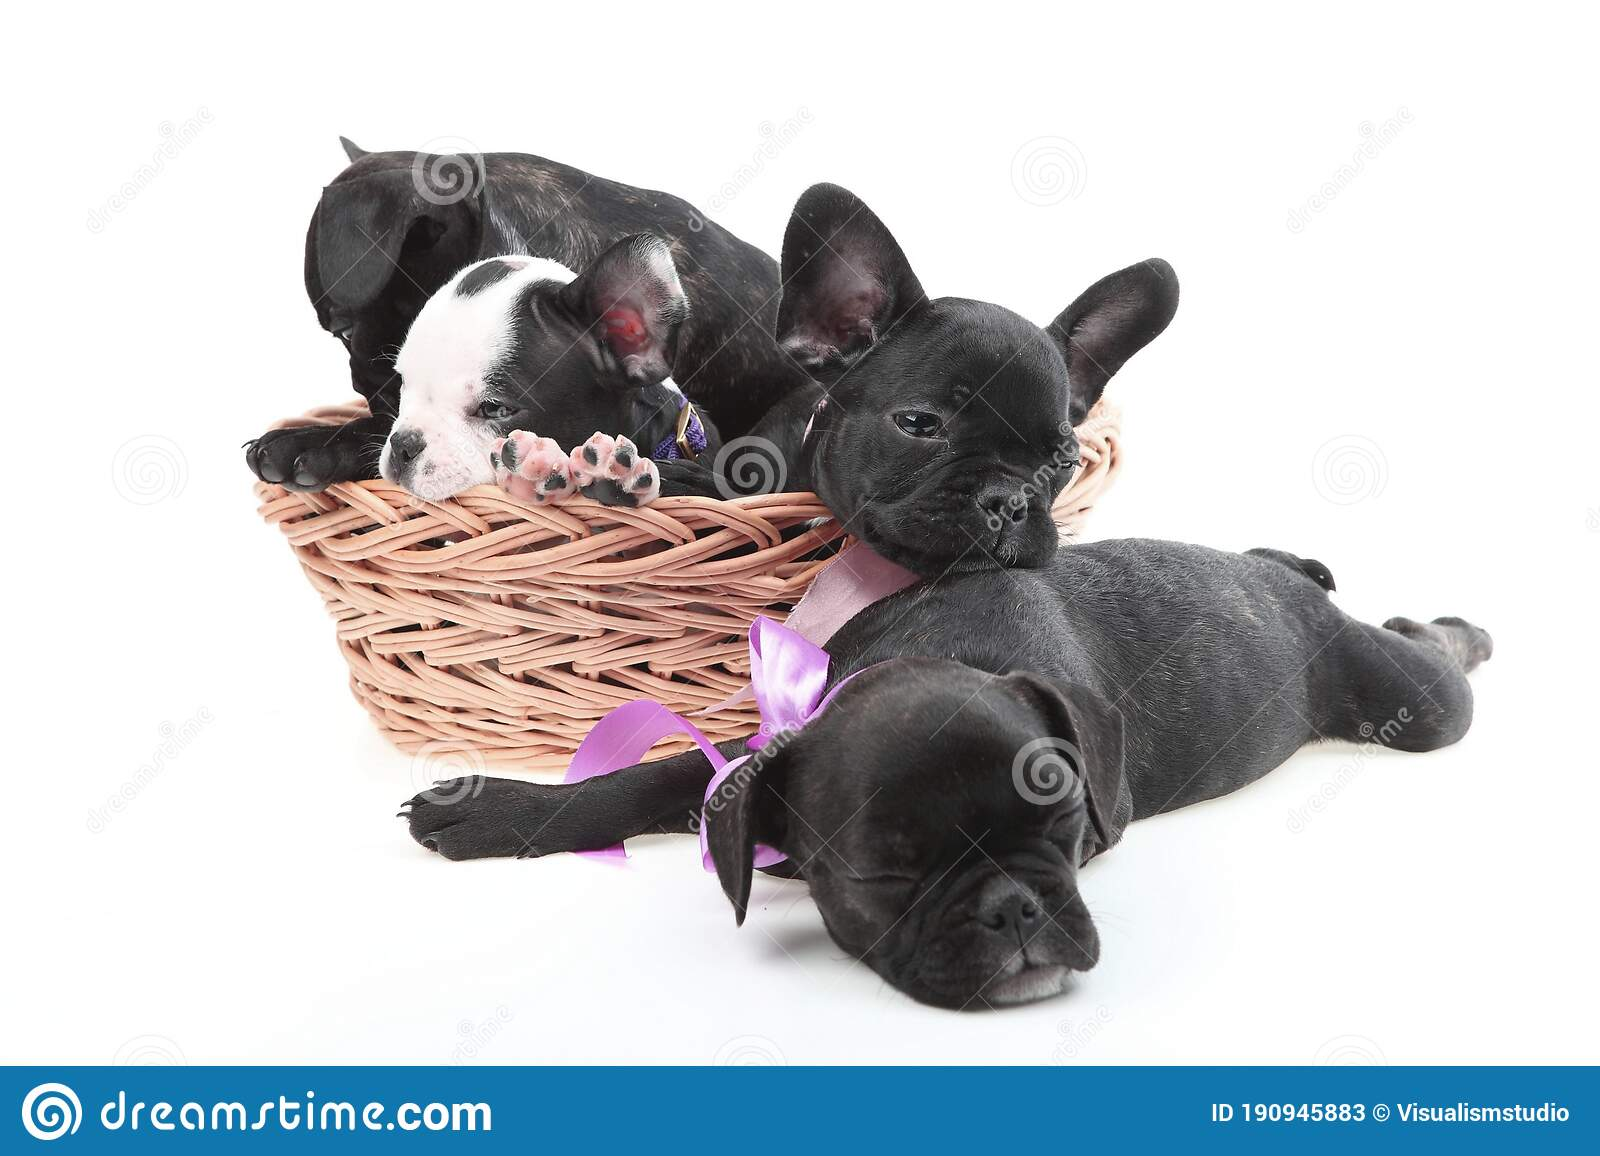 Black Dog Puppies Funny Smiling Puppy Dog A Paw And Cute Puppy On White Stock Image Image Of Canine Brown 190945883